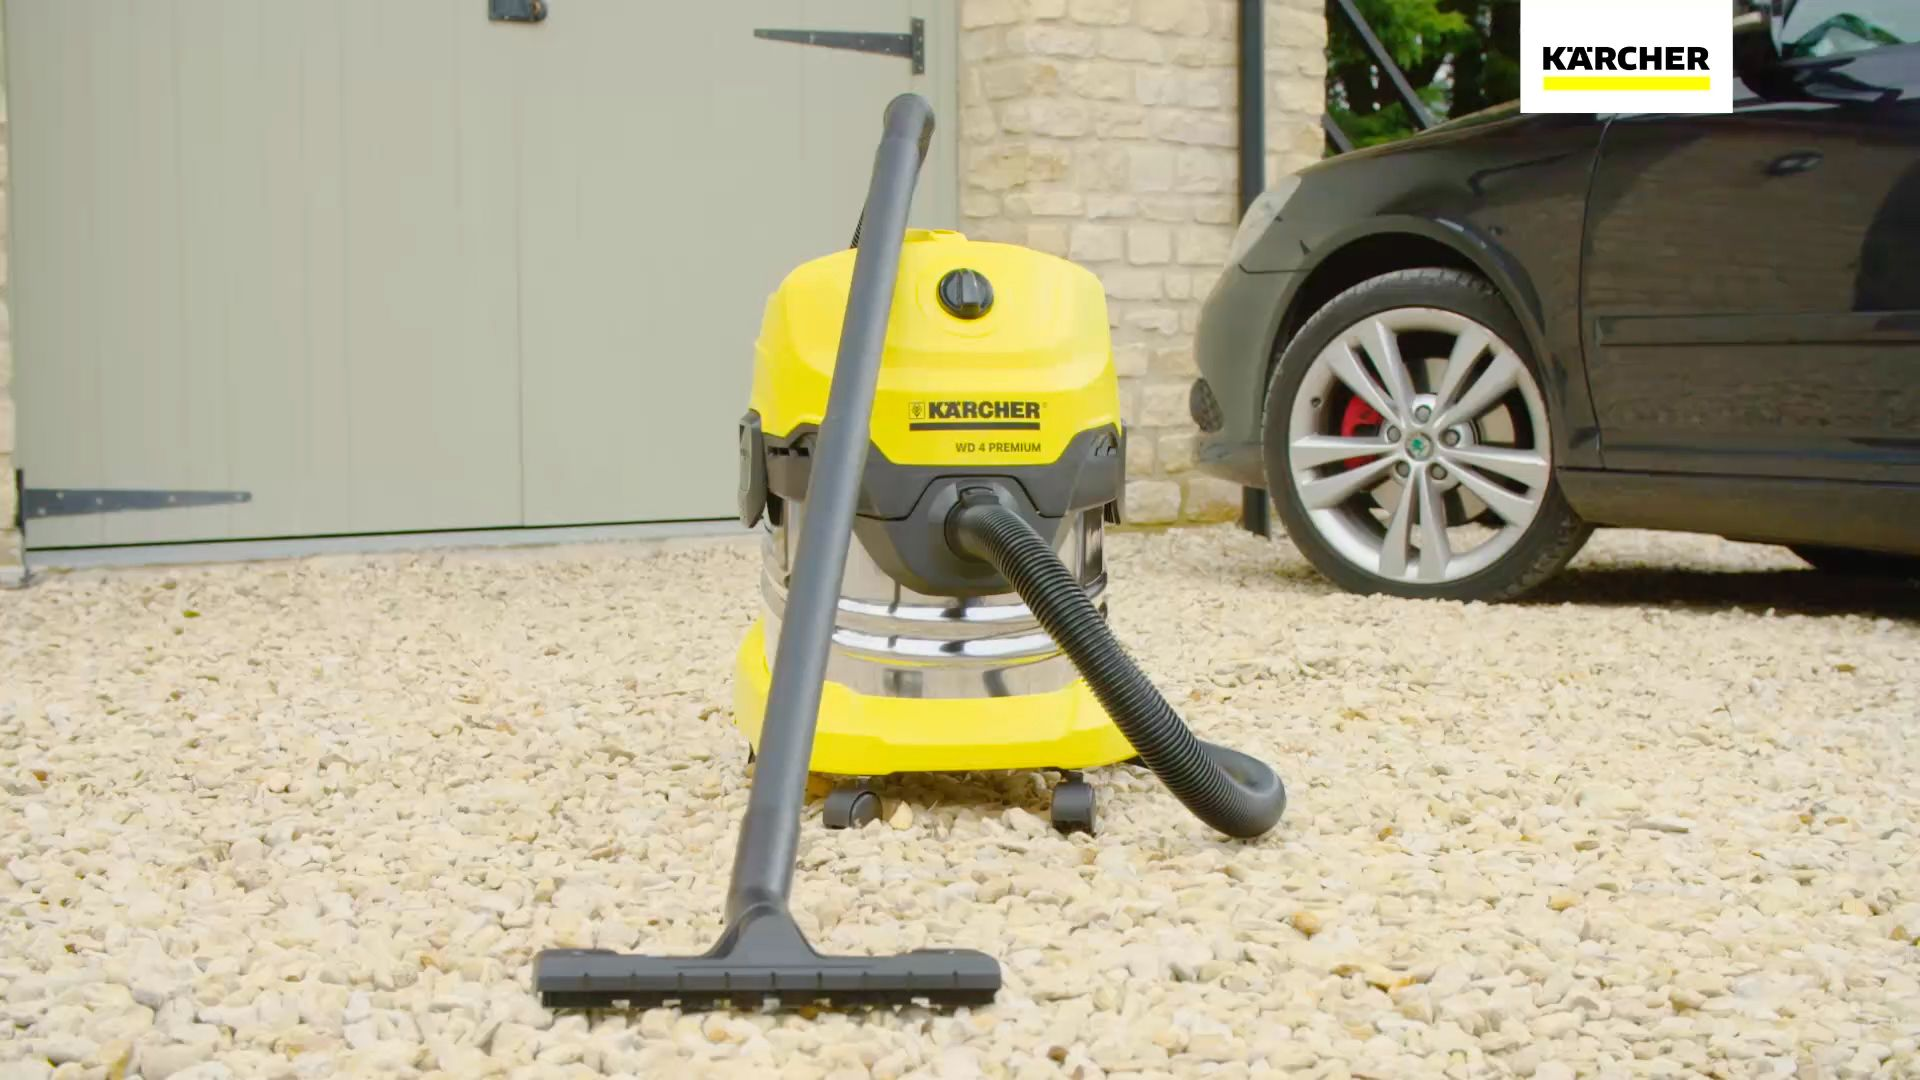 Krcher Wd4 Premium Wet And Dry Vacuum Cleaner At John Lewis Partners Karcher Wd 2